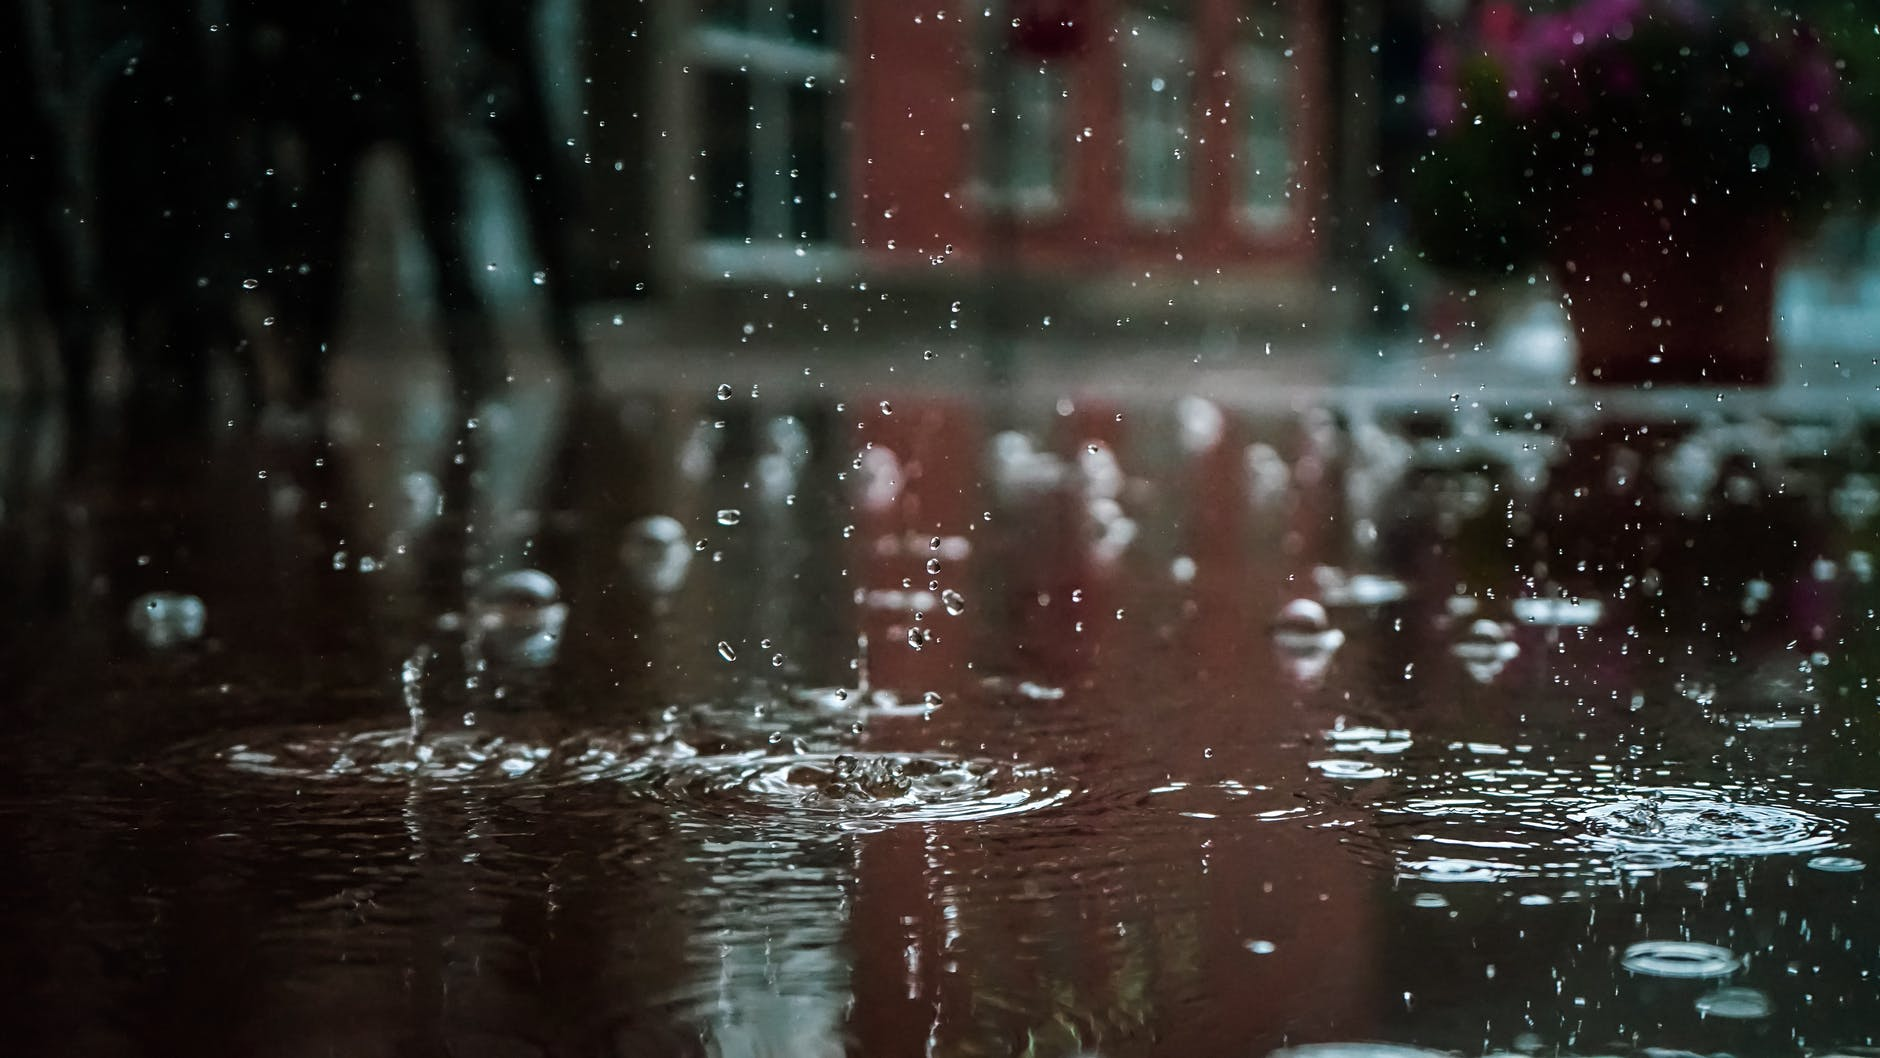 TaoBrowser: Best Finds for a Rainy Day